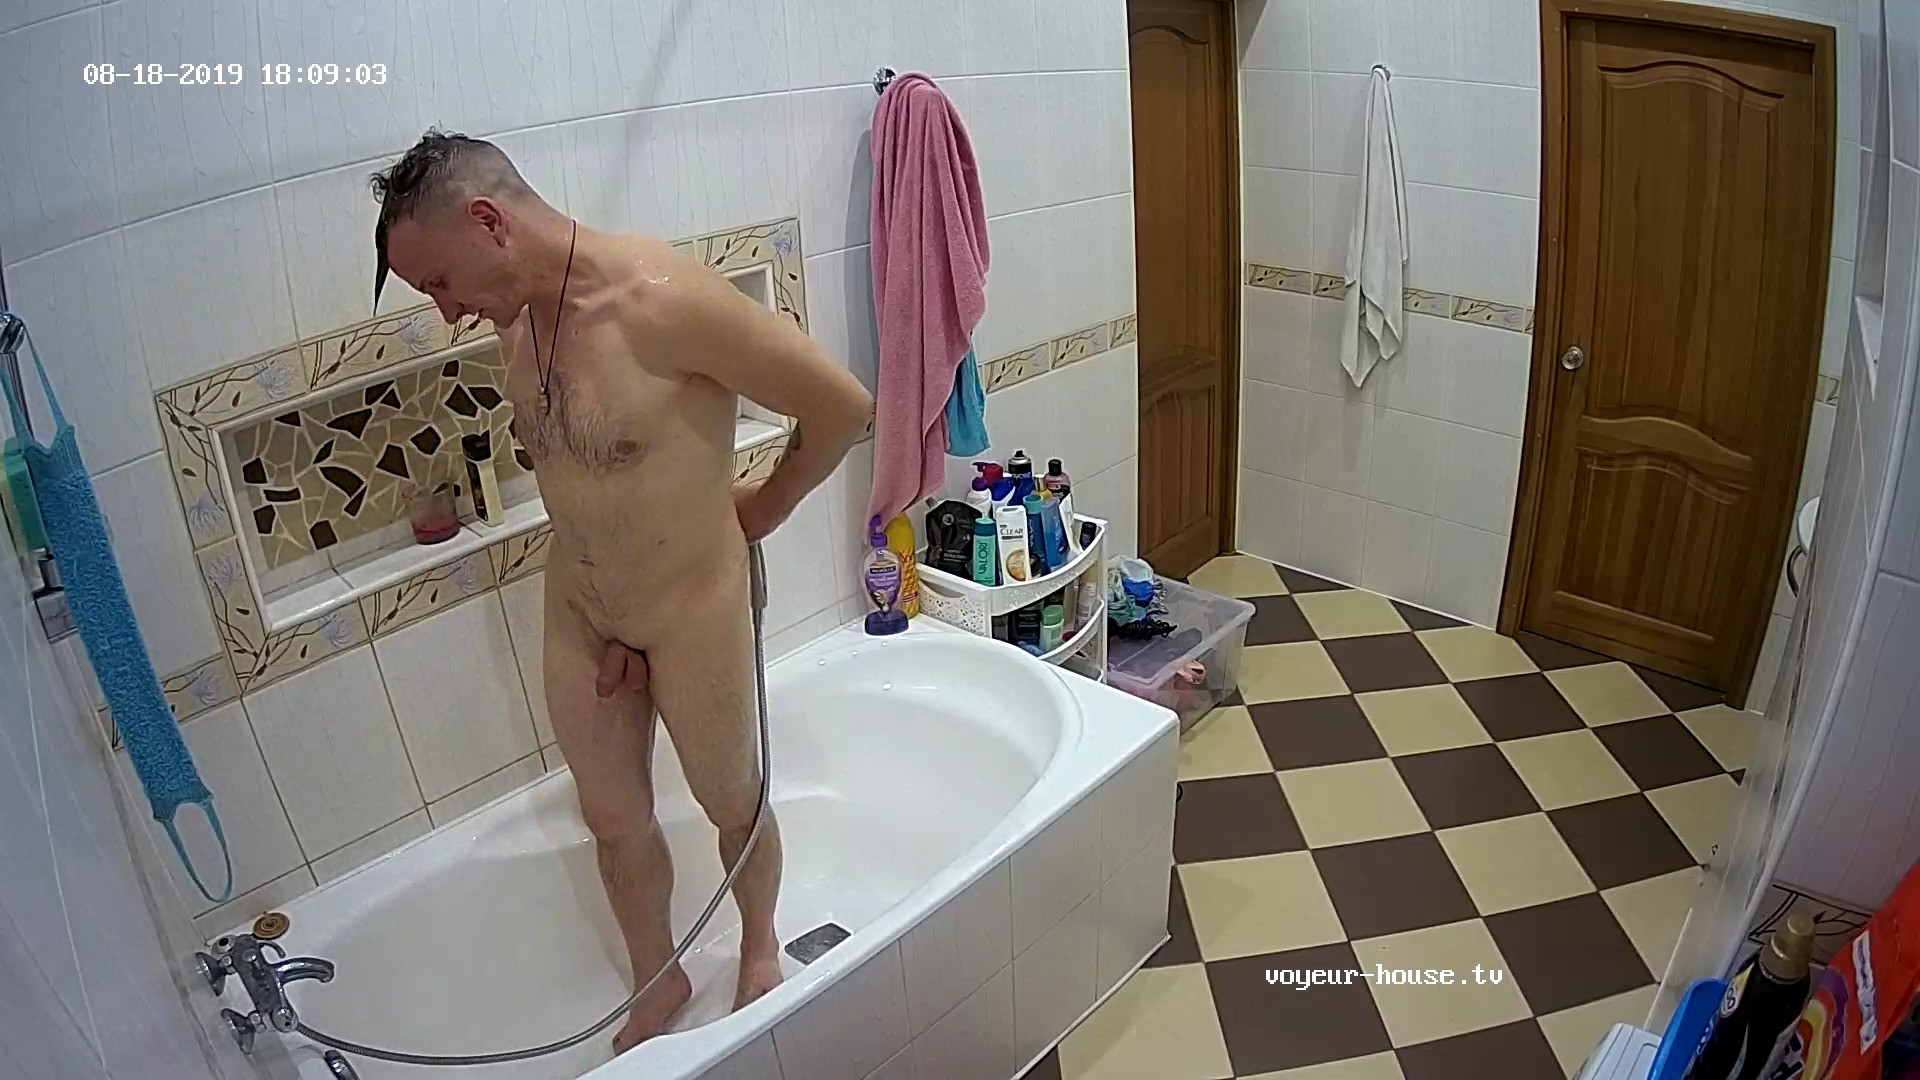 Guest guy evening shower 18 Aug 2019